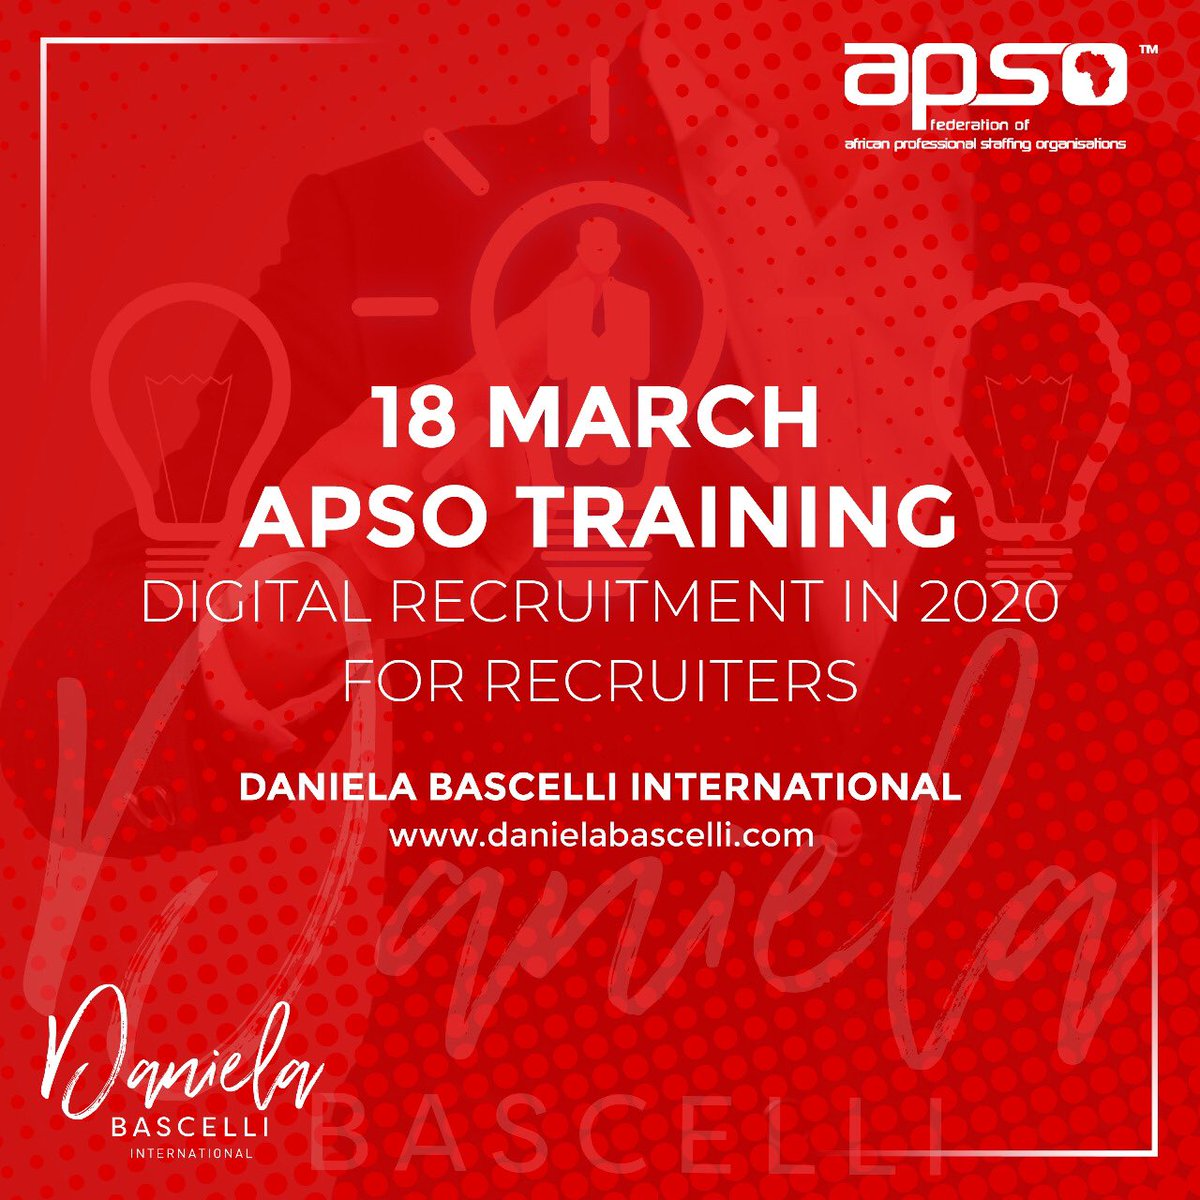 Recruiters! If you're available on this date please book your seats with @apsoza 👈🏻 to get the latest on digital recruitment in 2020! Facilitated by @danielabascelli it's going to be AMAZING!!! 🙌🏼 Don't miss out 🤓  #danielabascelli #businesscoaching #APSO #digitalrecruitment https://t.co/O5Uc4dkSwe